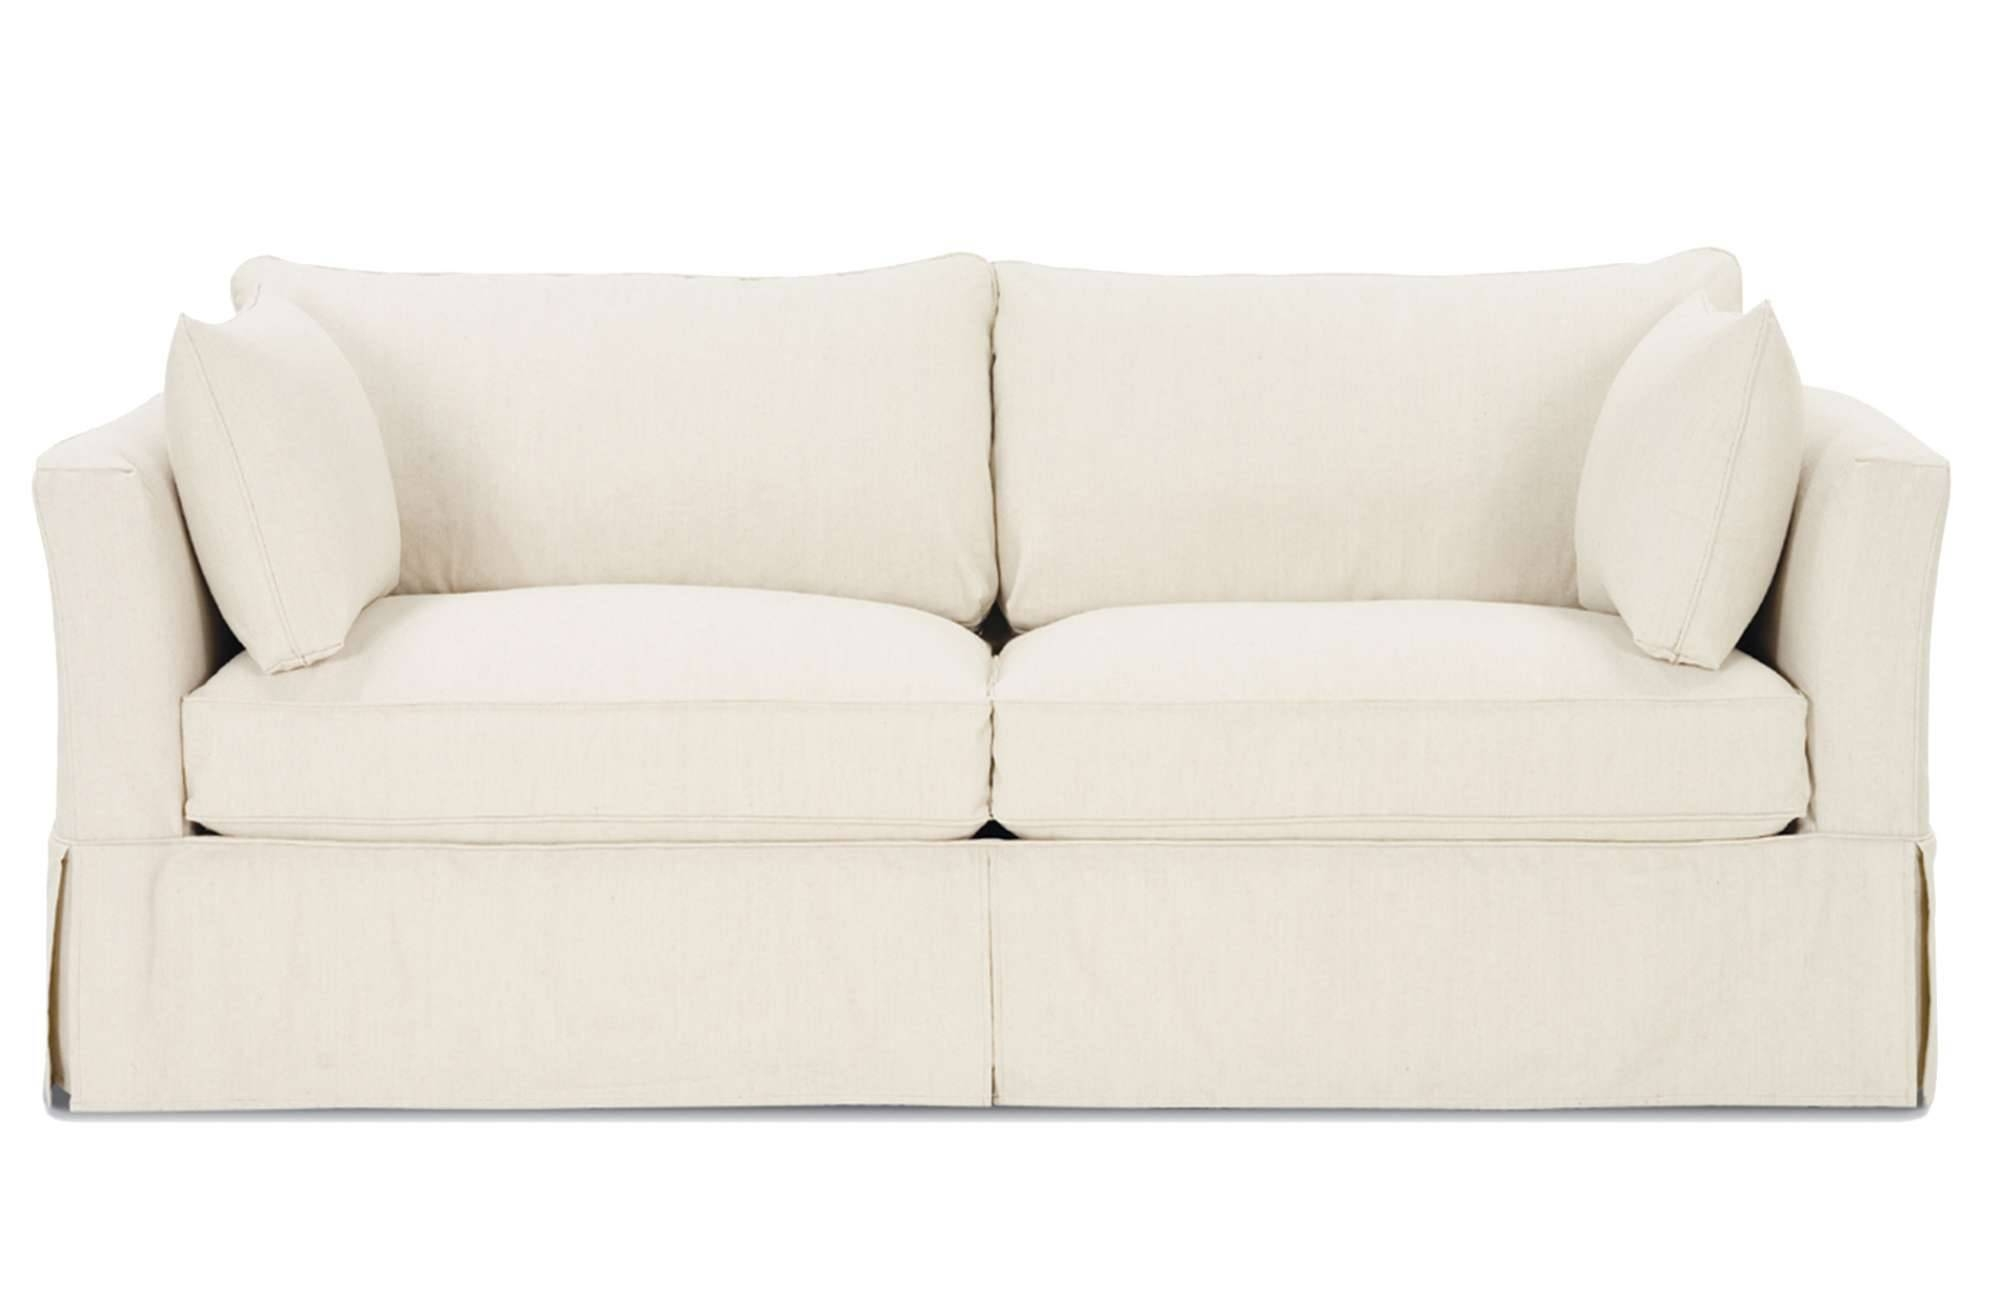 Decorating: Outstanding Sectional Slipcovers For Living Room regarding Contemporary Sofa Slipcovers (Image 9 of 30)